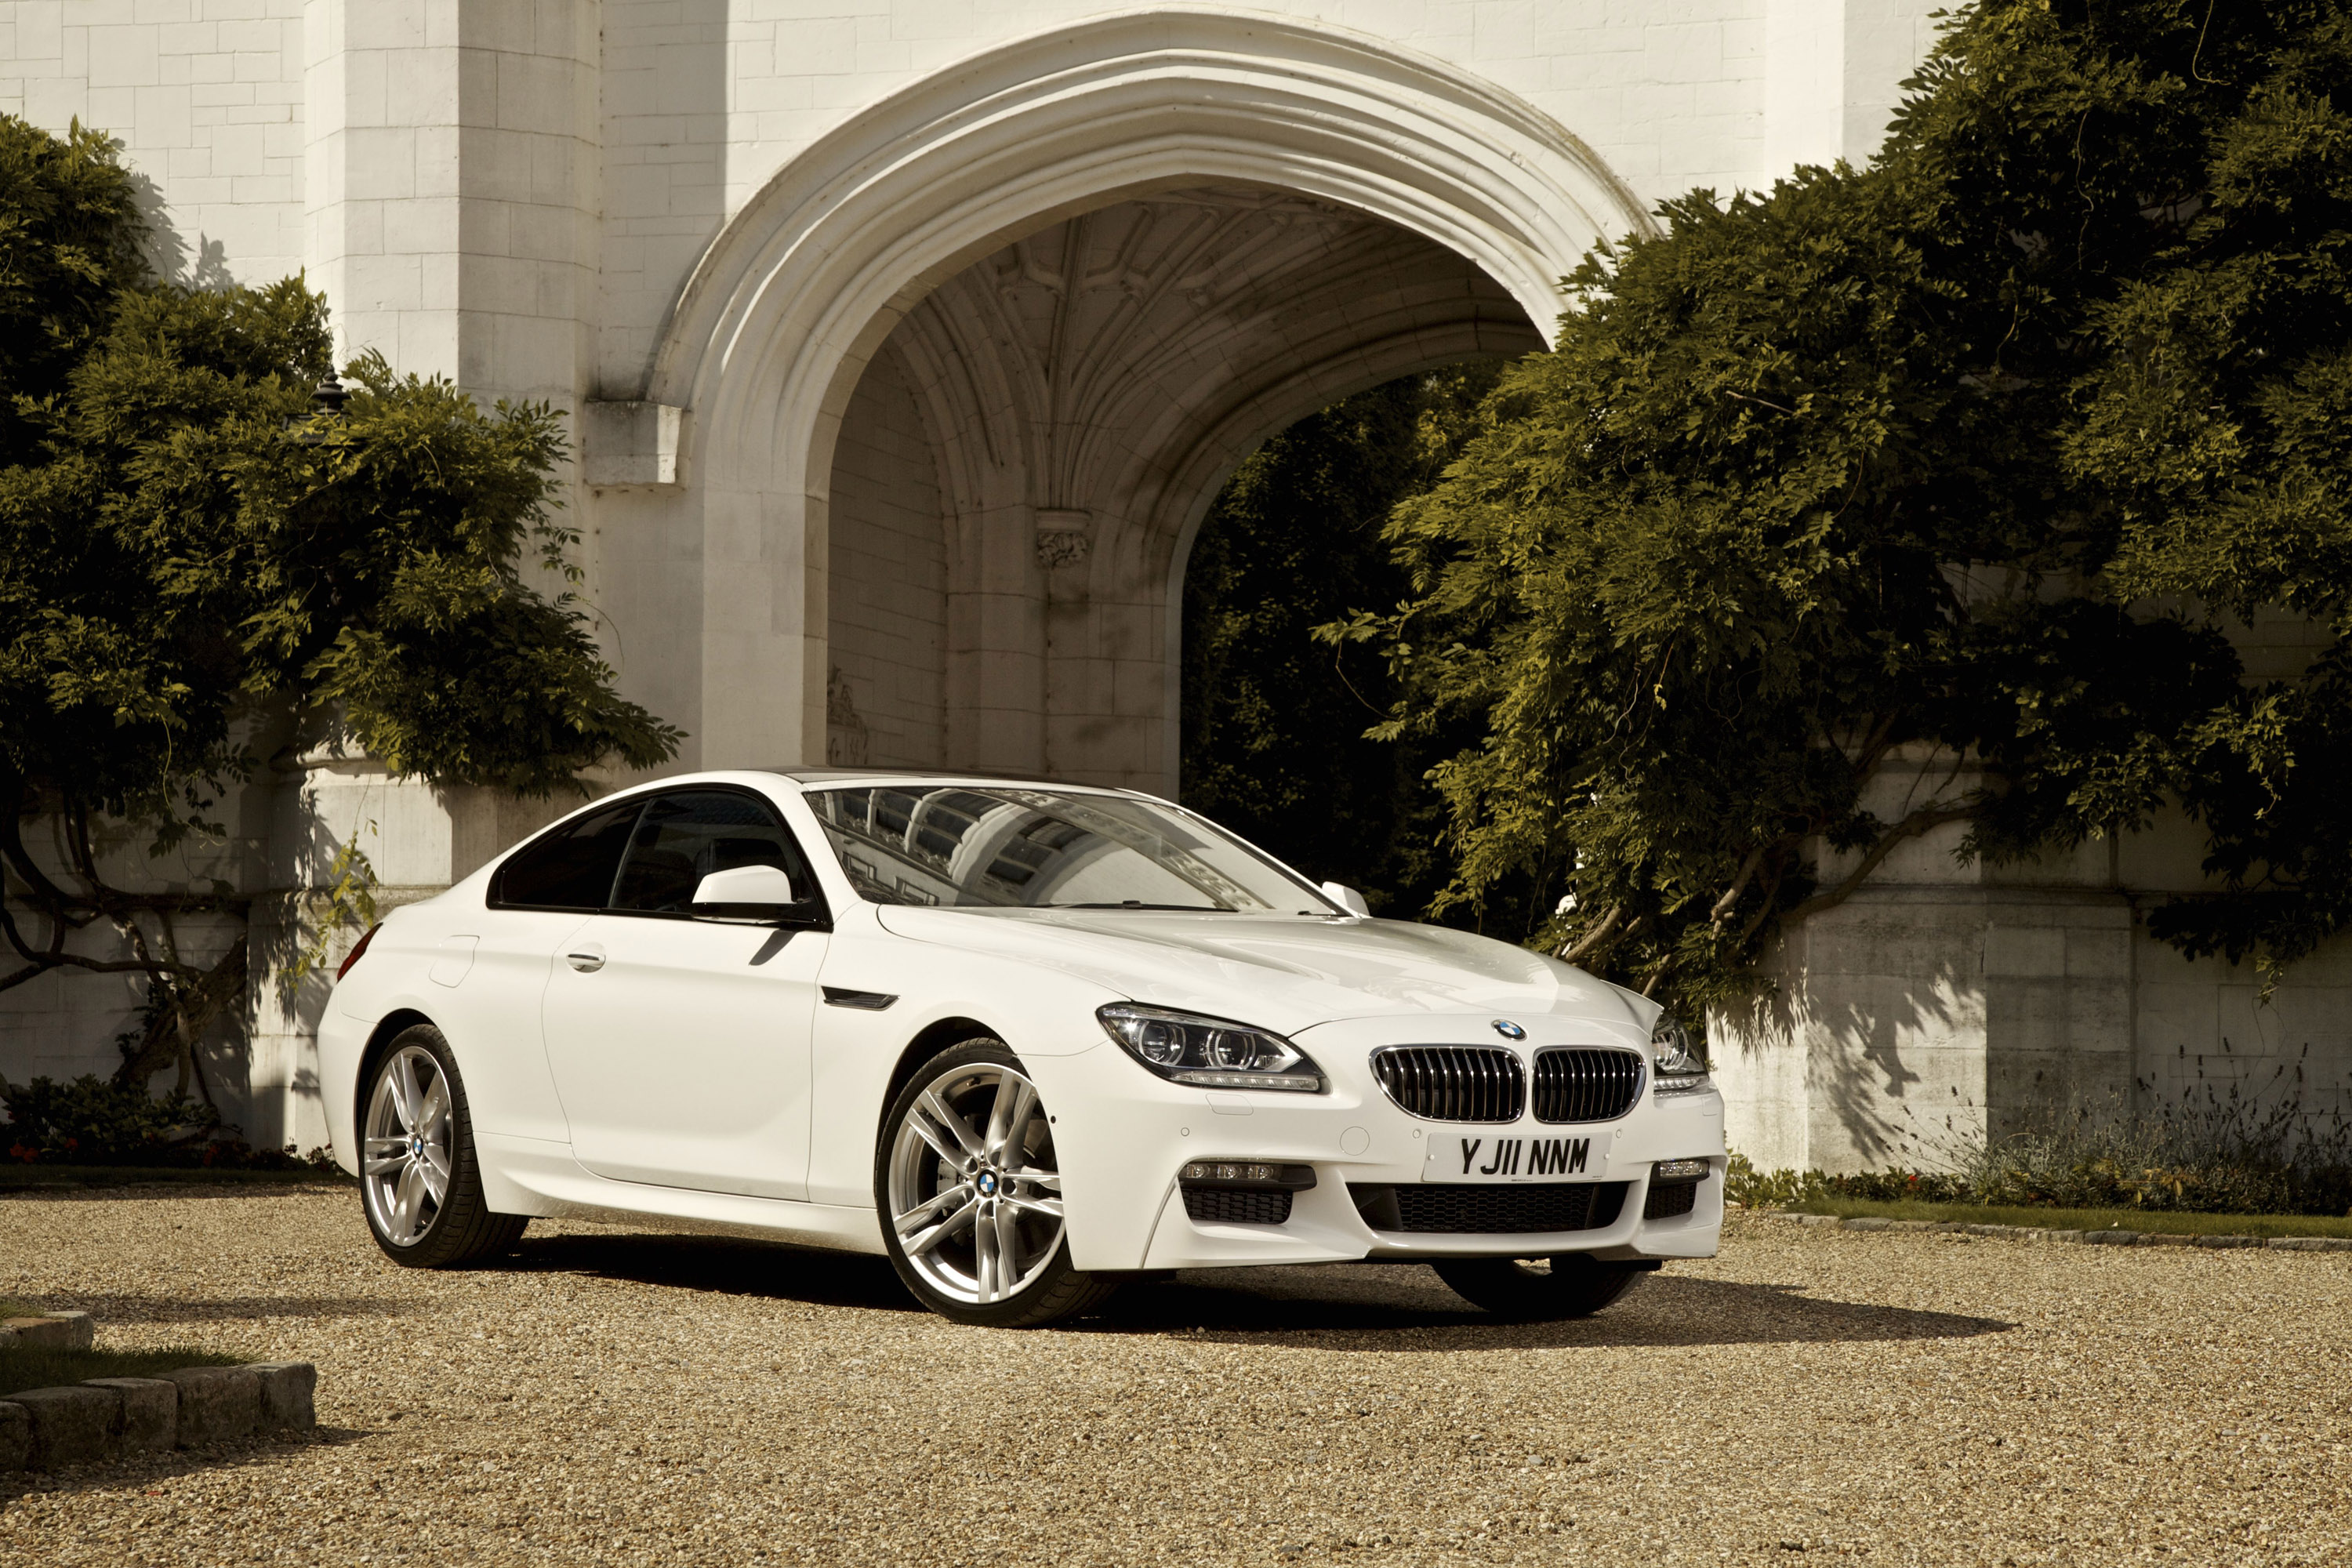 2012 BMW 6 Series Coupe - Picture 59622